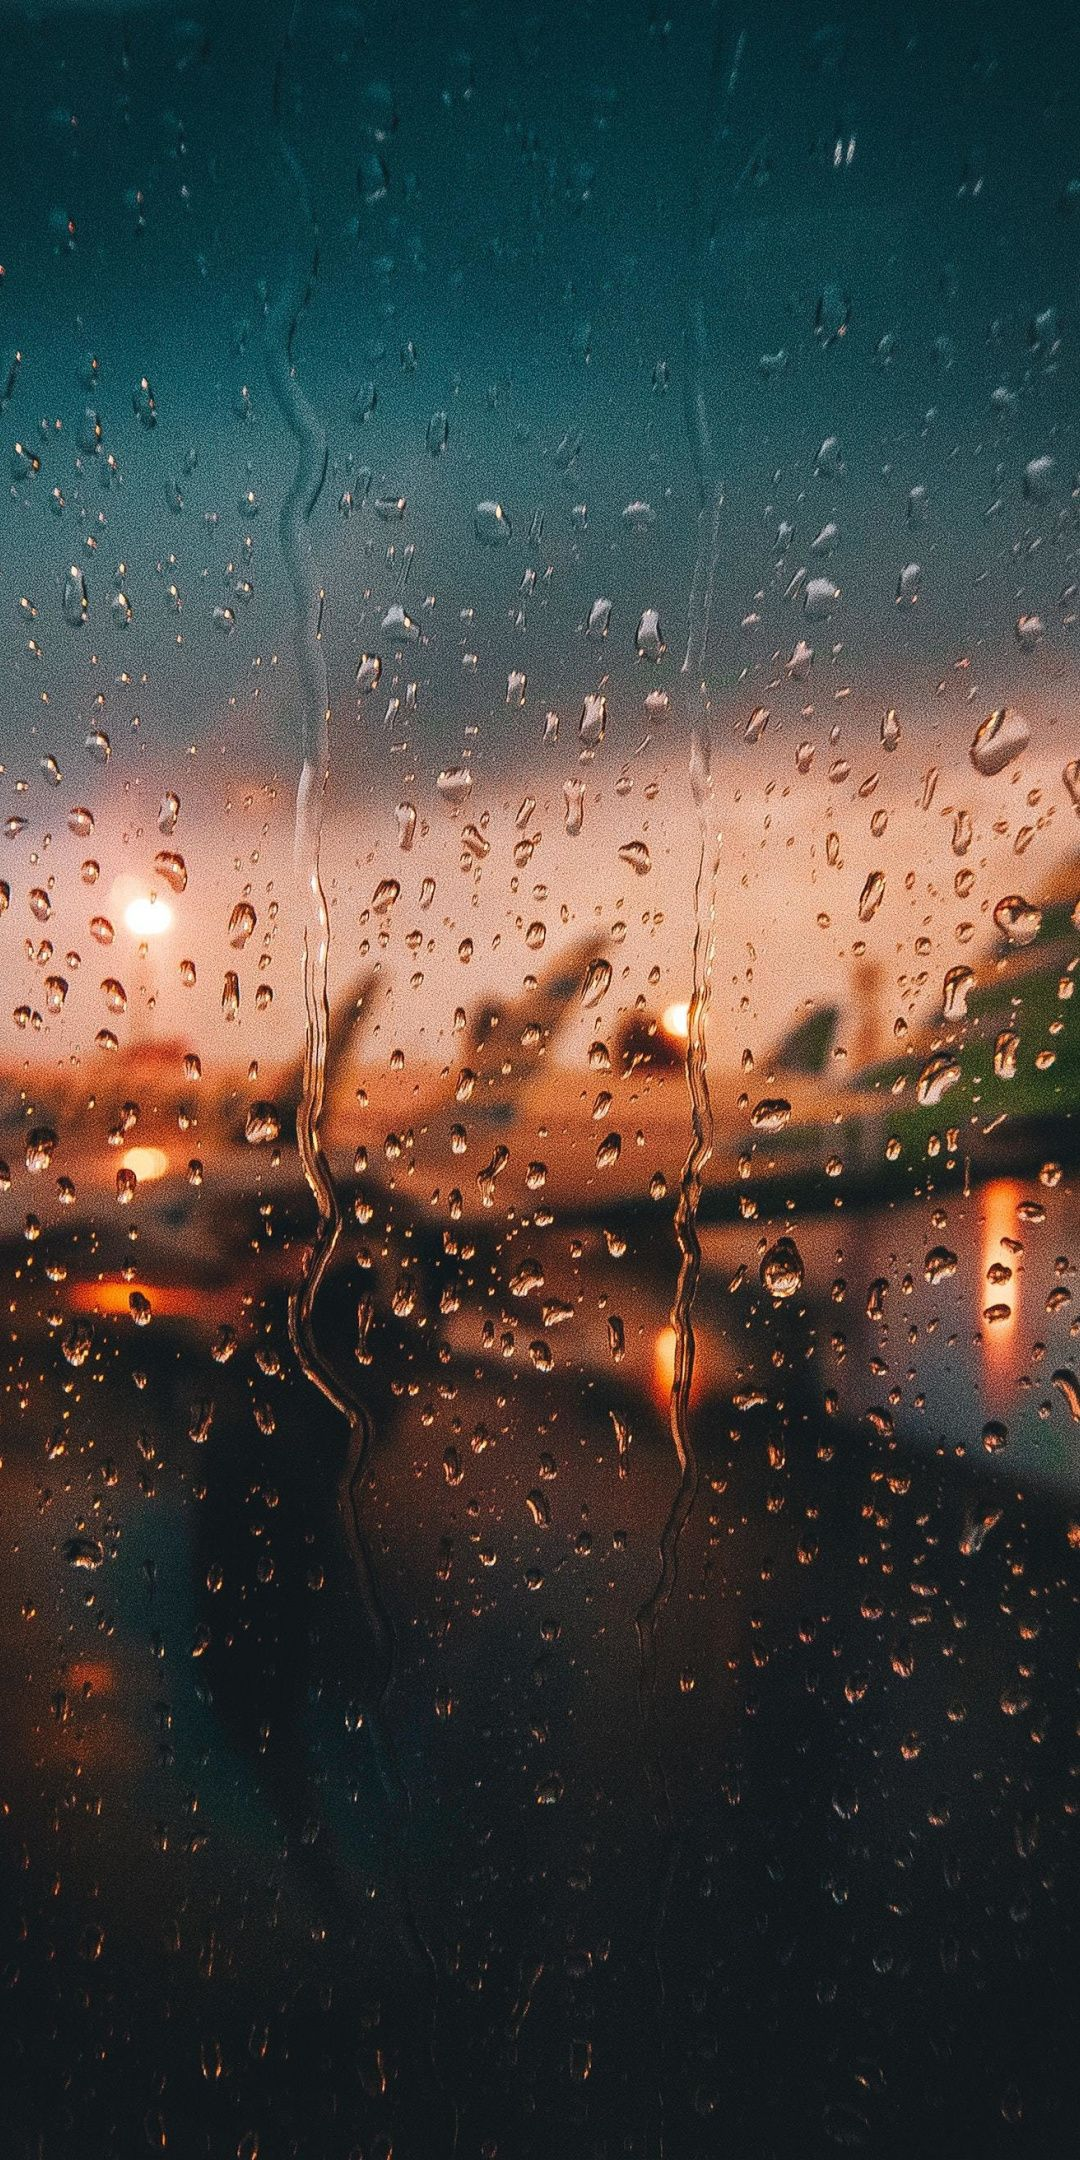 Glass surface, window, airport, sunset, drops, 1080x2160